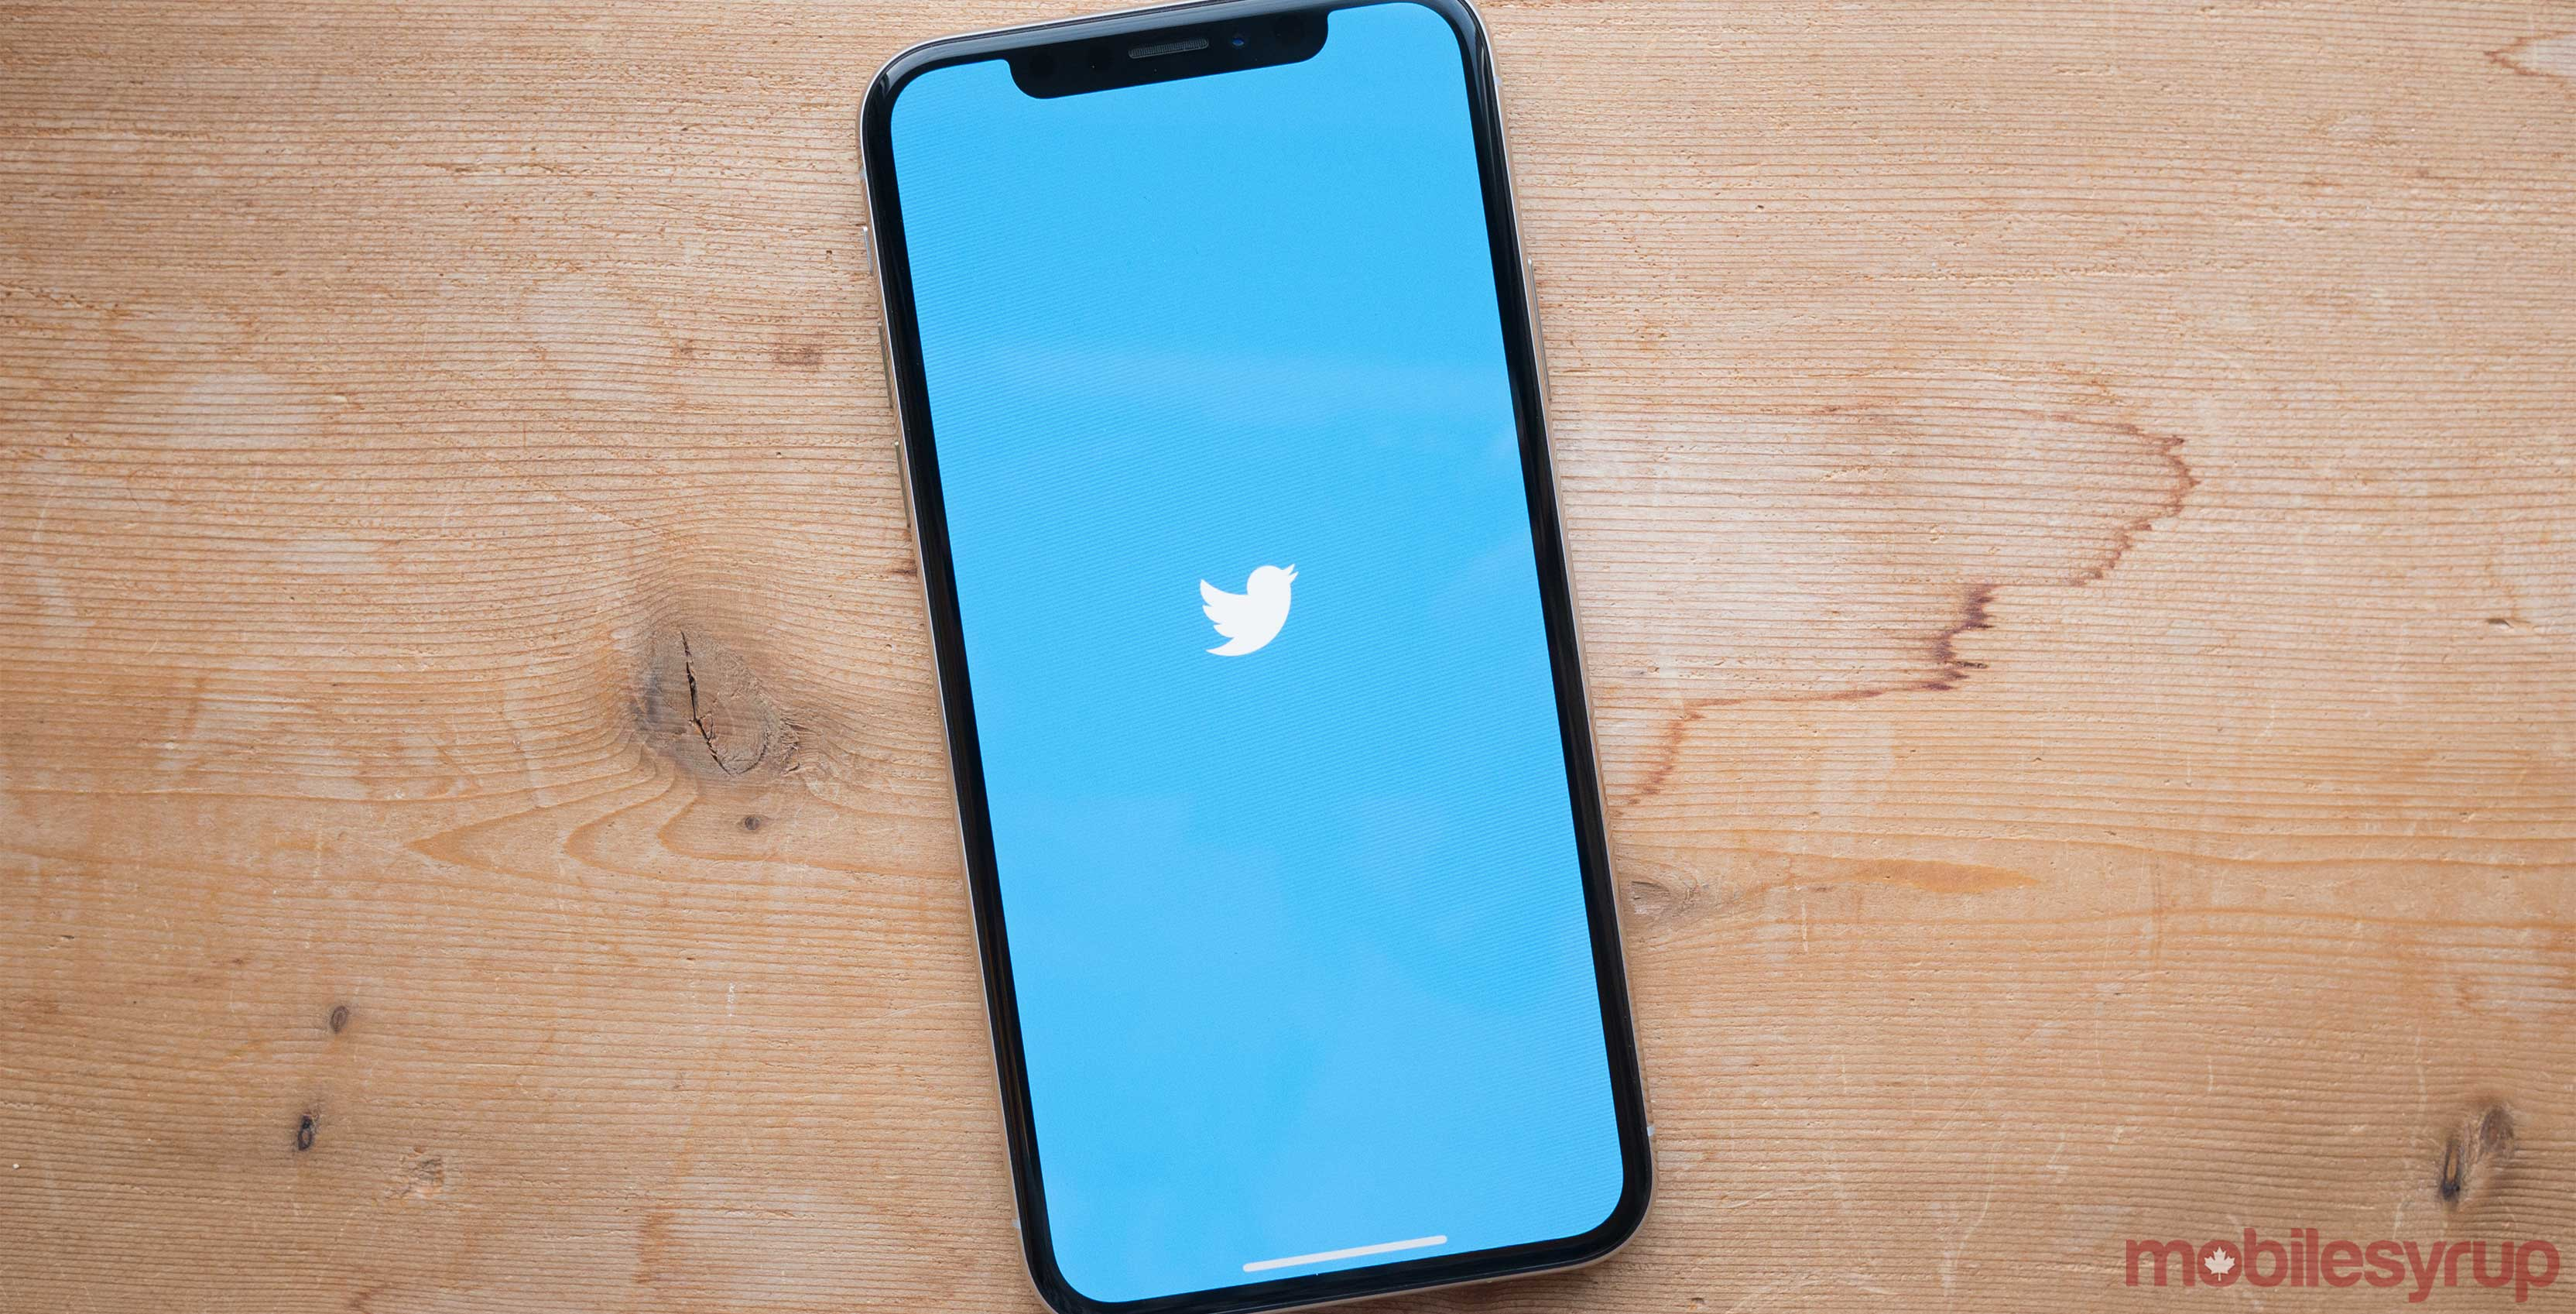 Twitter Canada on phone